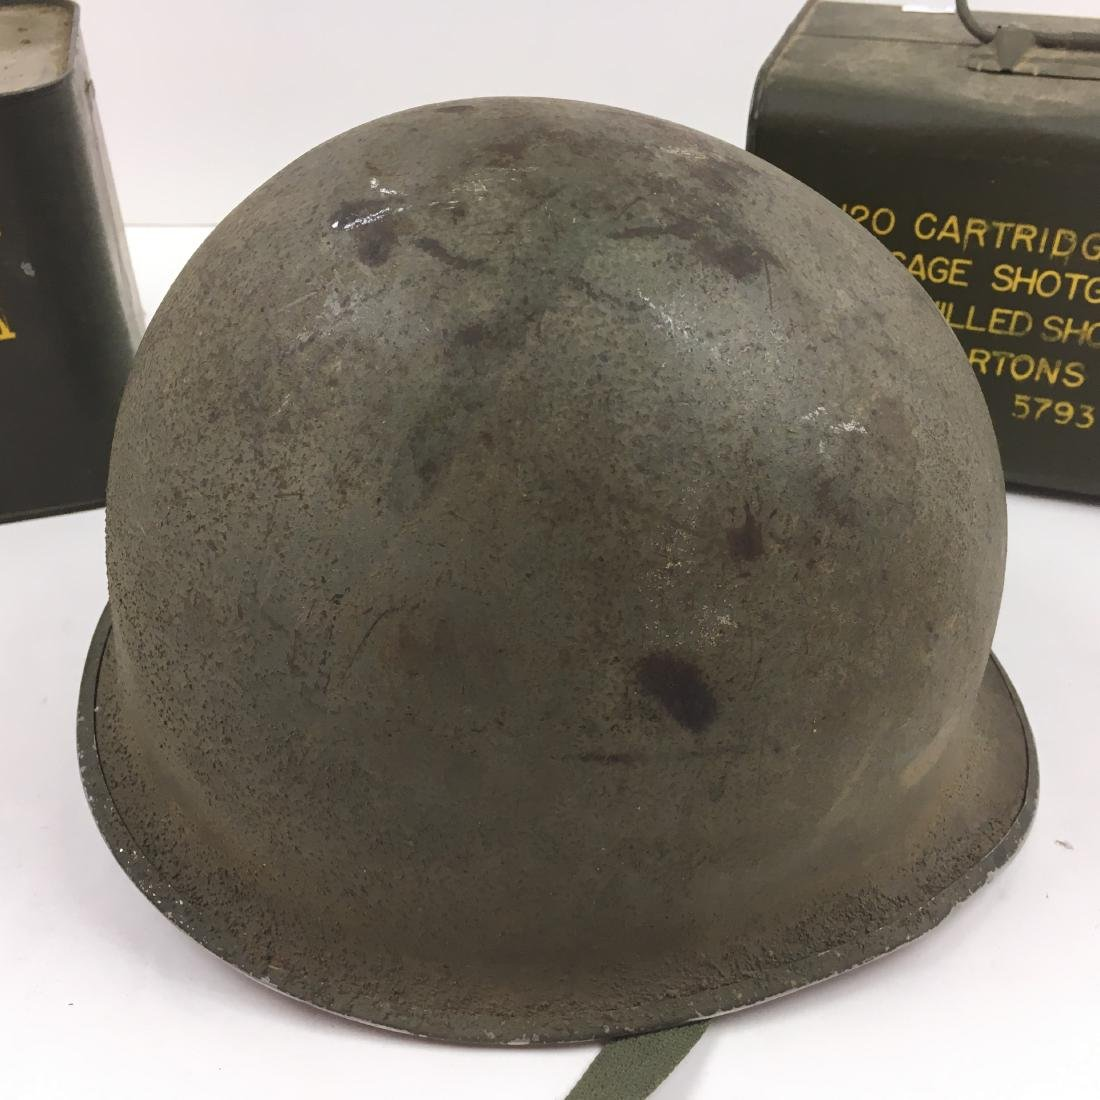 120 RD 12 G RA SPAM CAN AMMO +3 VTG MILITARY ITEMS - 3